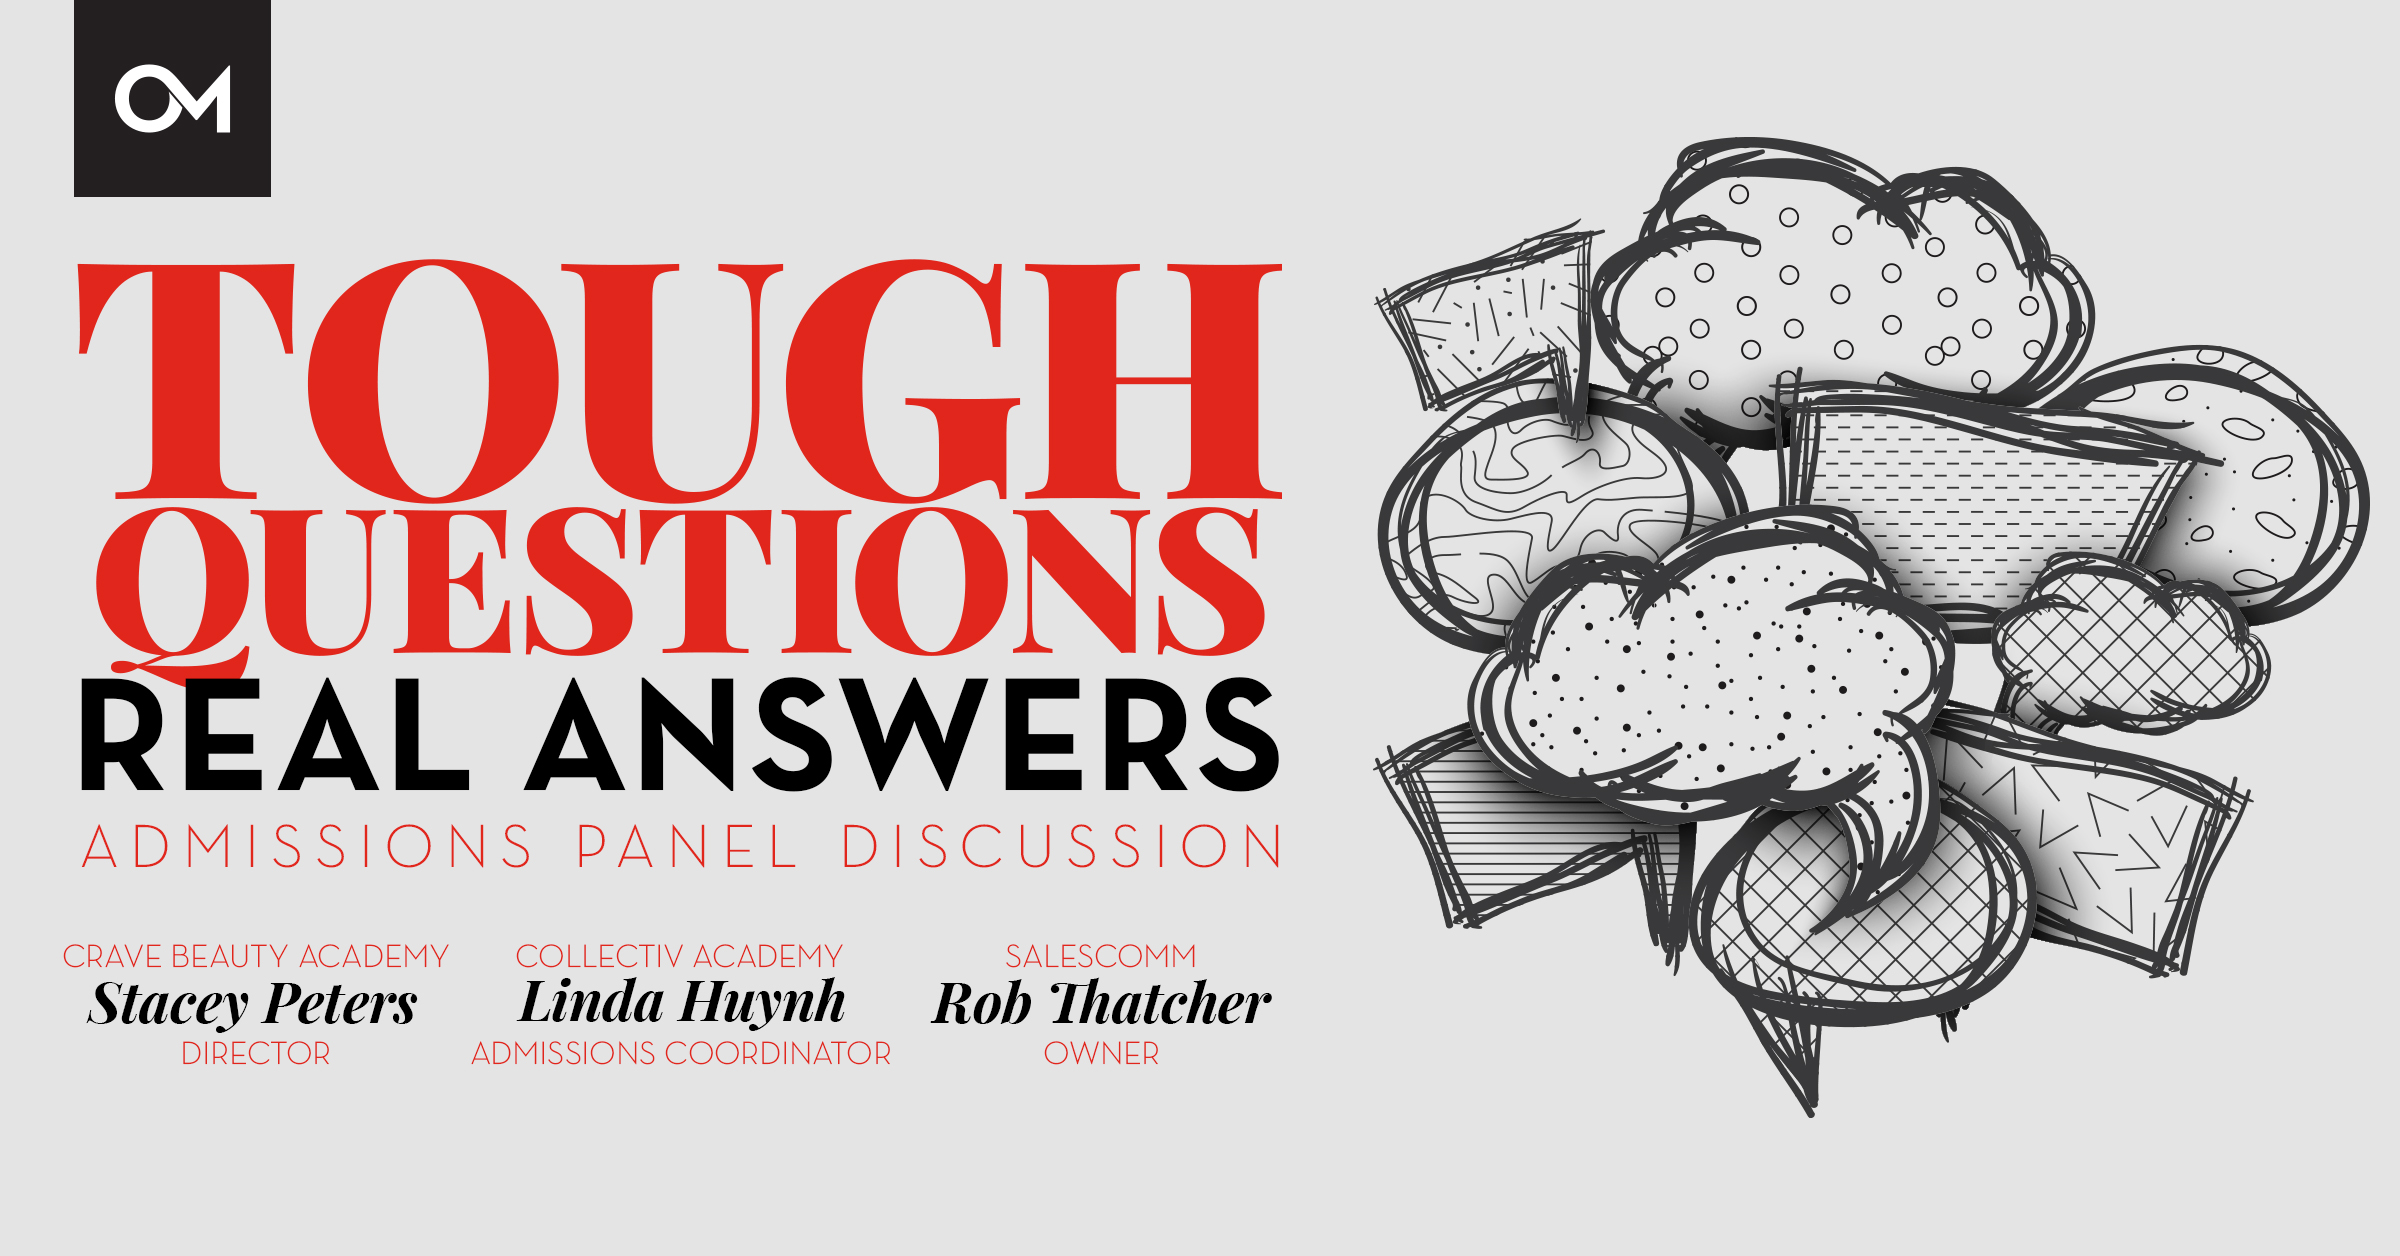 Touch questions, real answers webinar